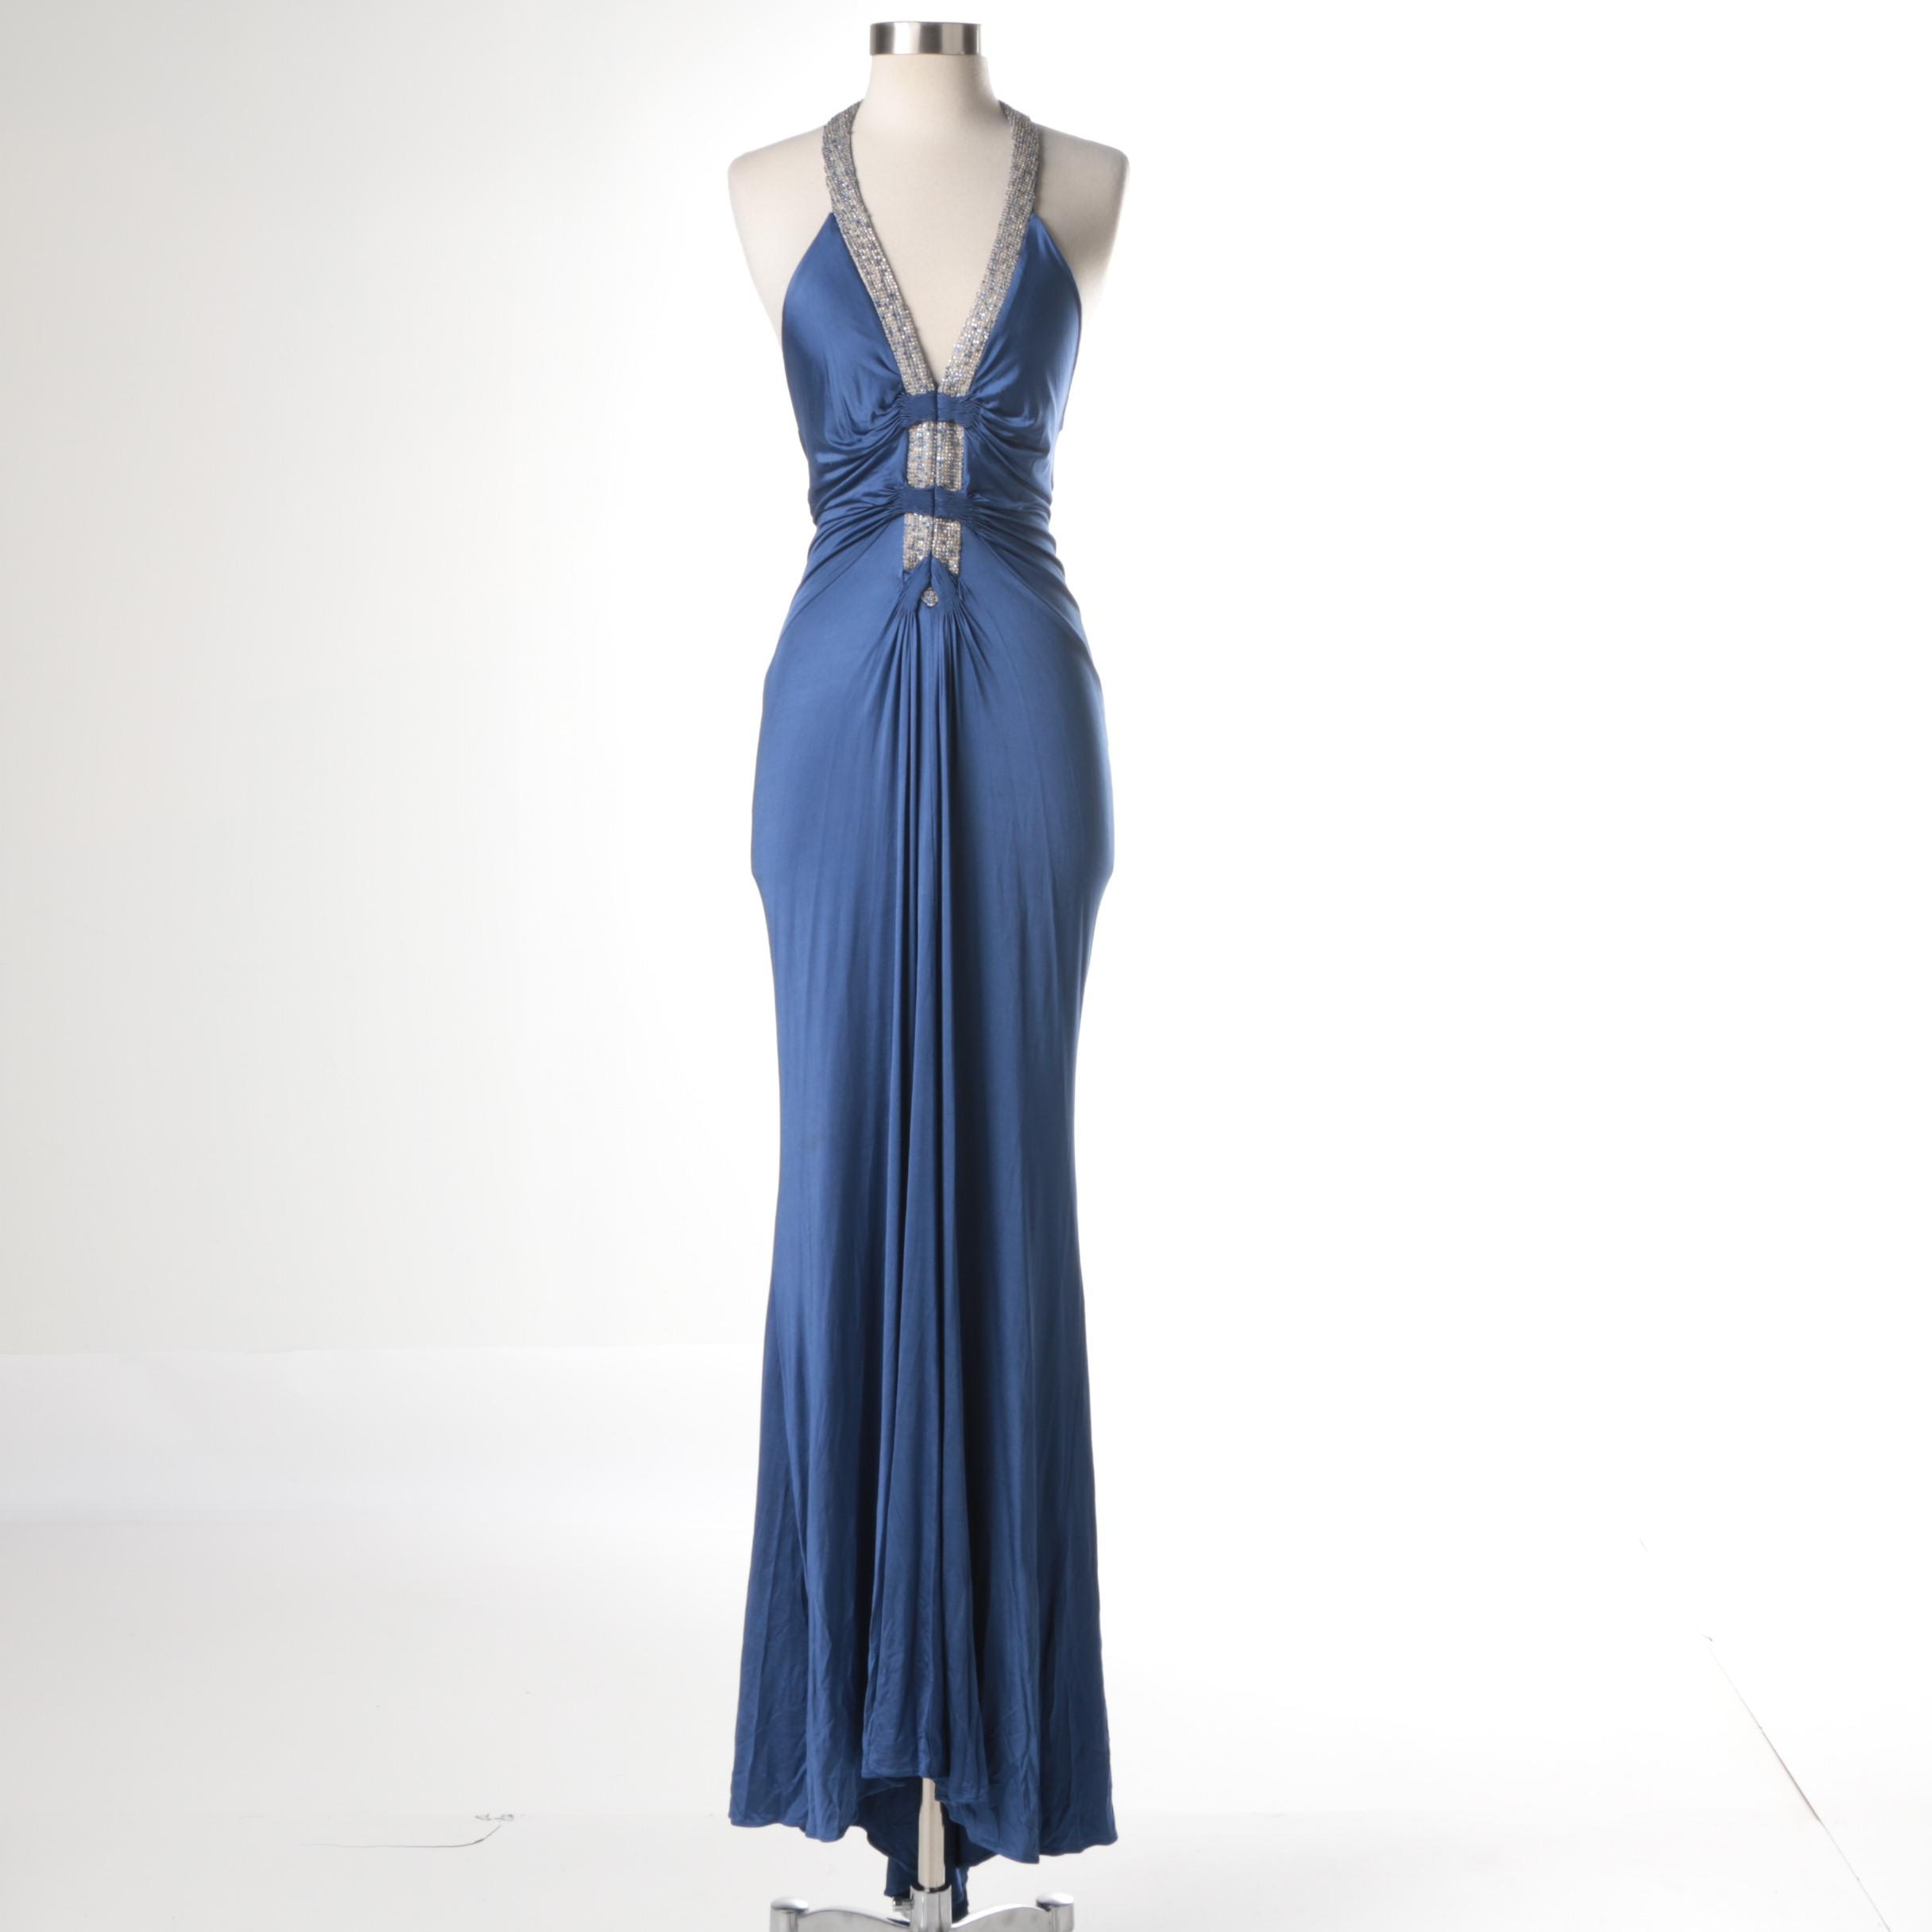 Roberto Cavalli Rhinestone Neckline Evening Dress